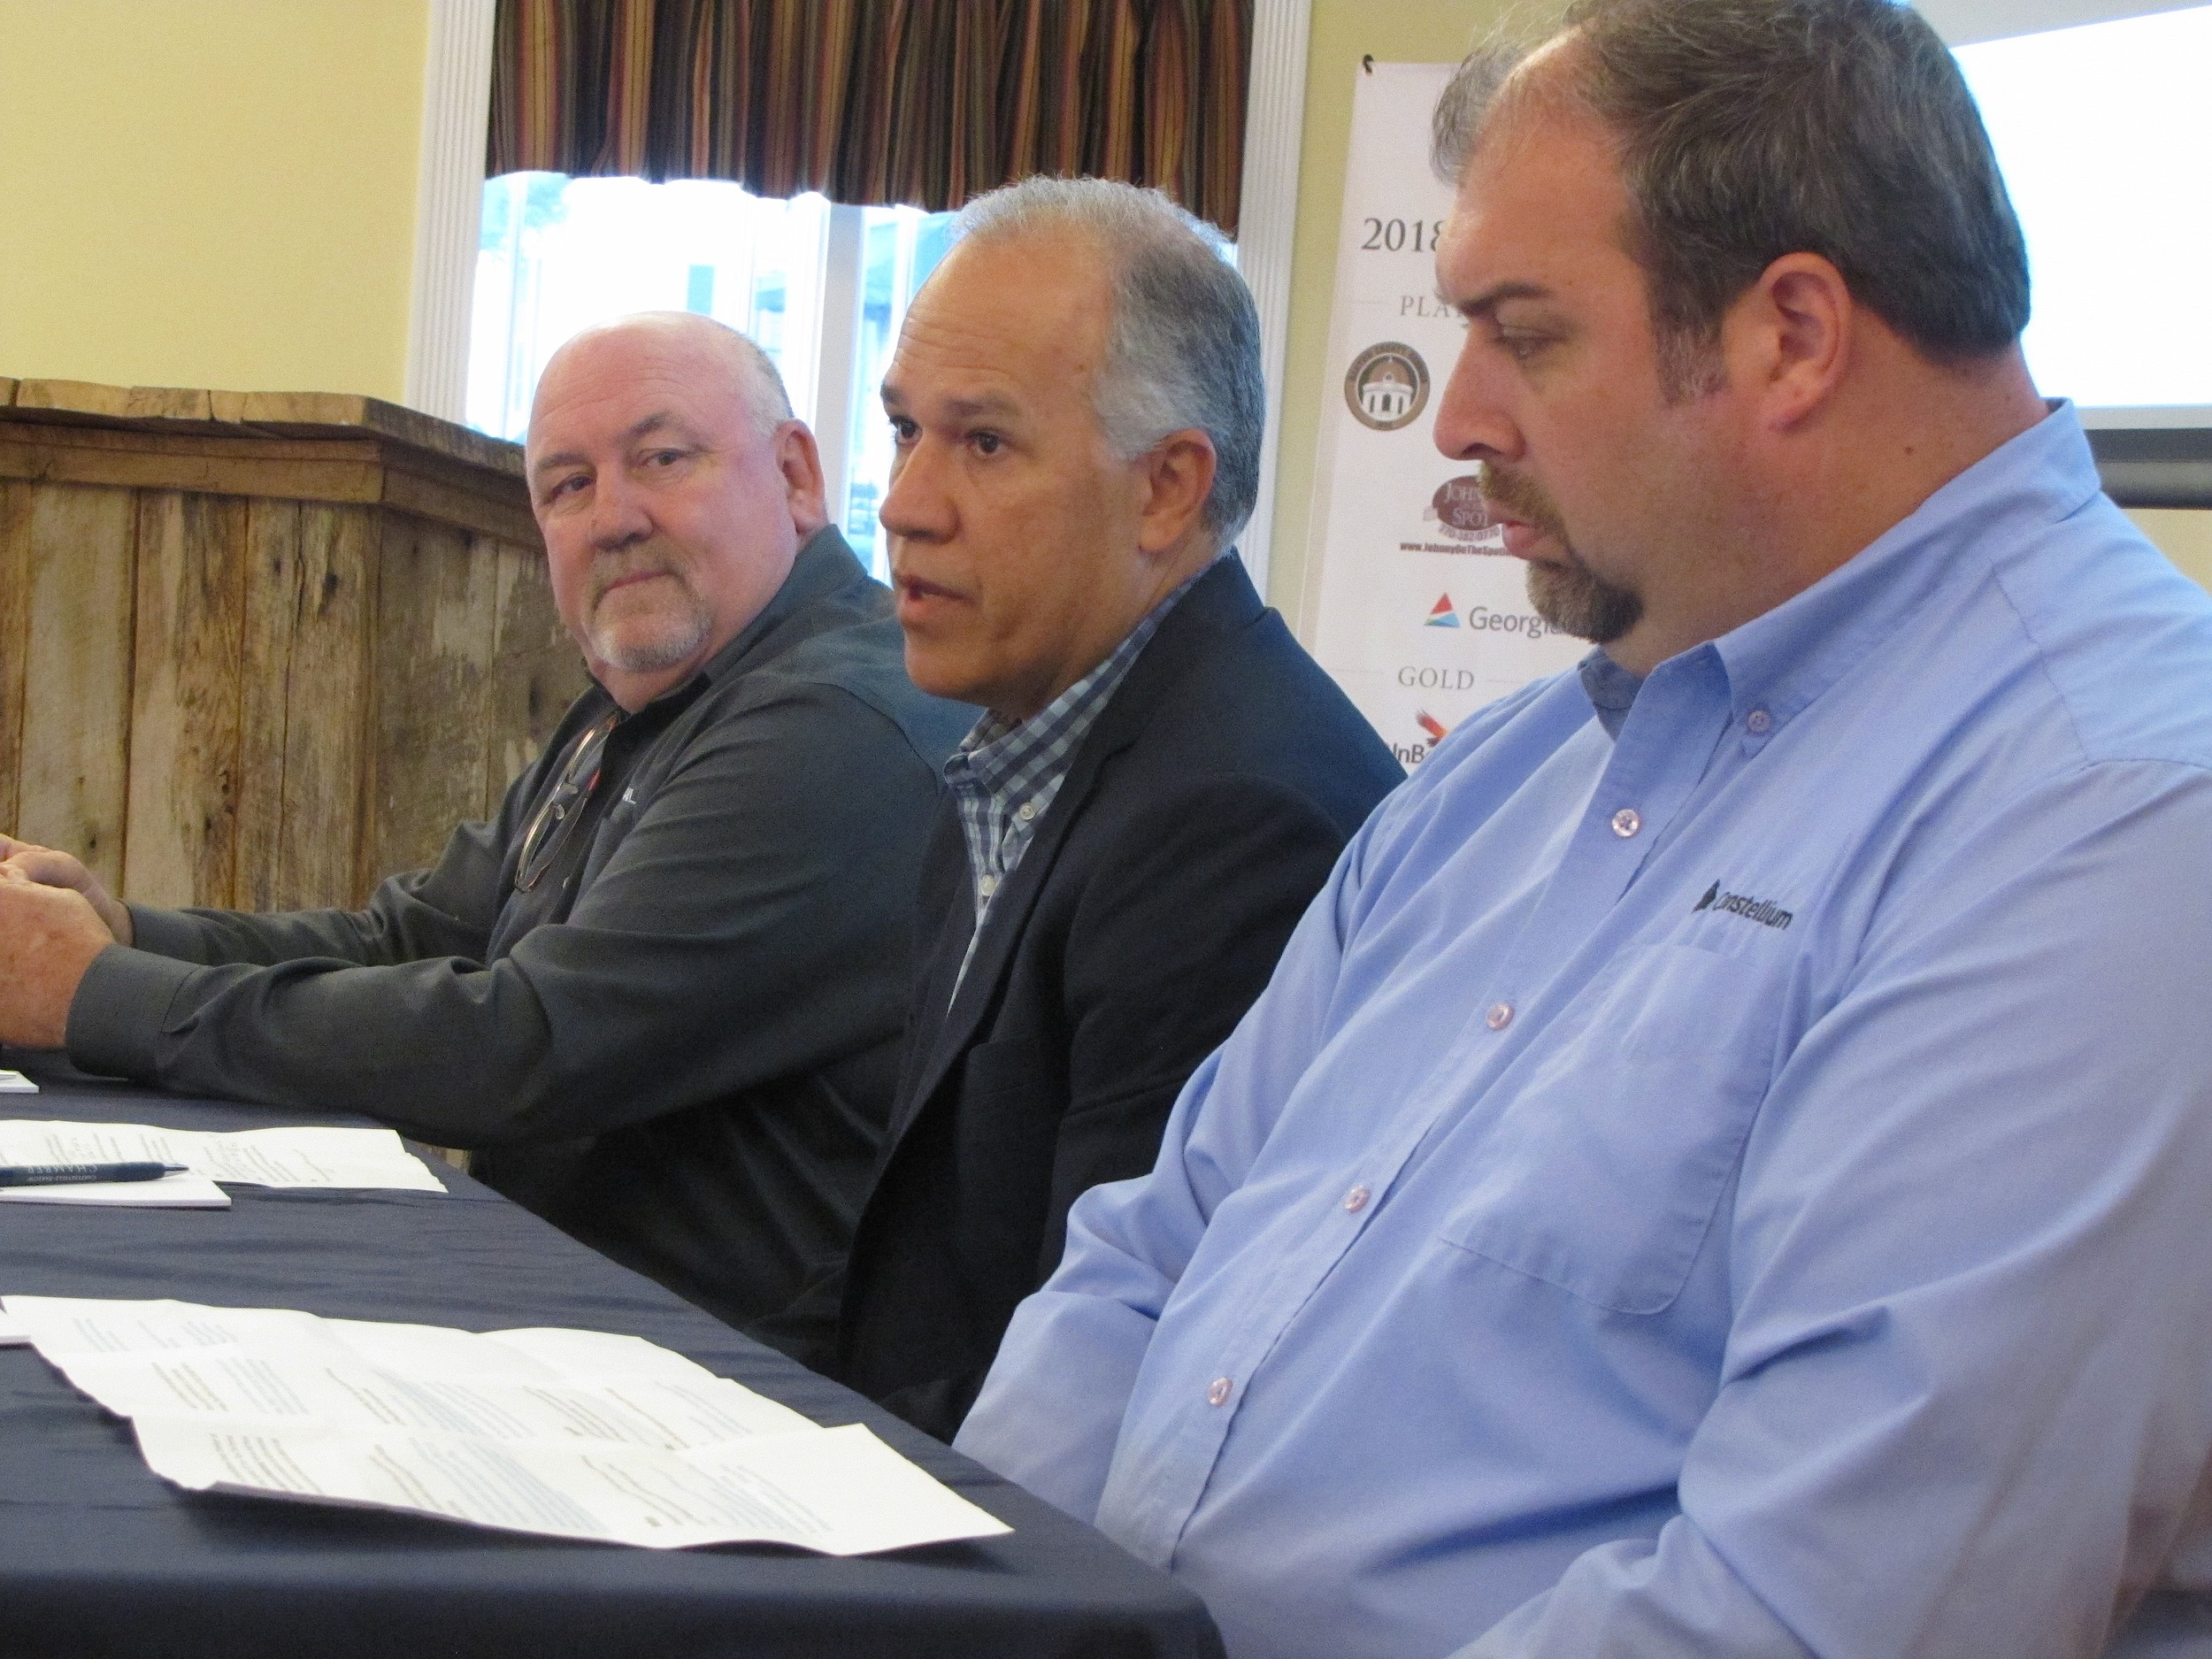 From left, TrinityRail plant manager Bob Fair, Gerdau Long Steel North America Vice President and General Manager Casimiro Liborio and Constellium Automotive plant manager Bryan James speak at Monday's Cartersville-Bartow Chamber of Commerce presentation.